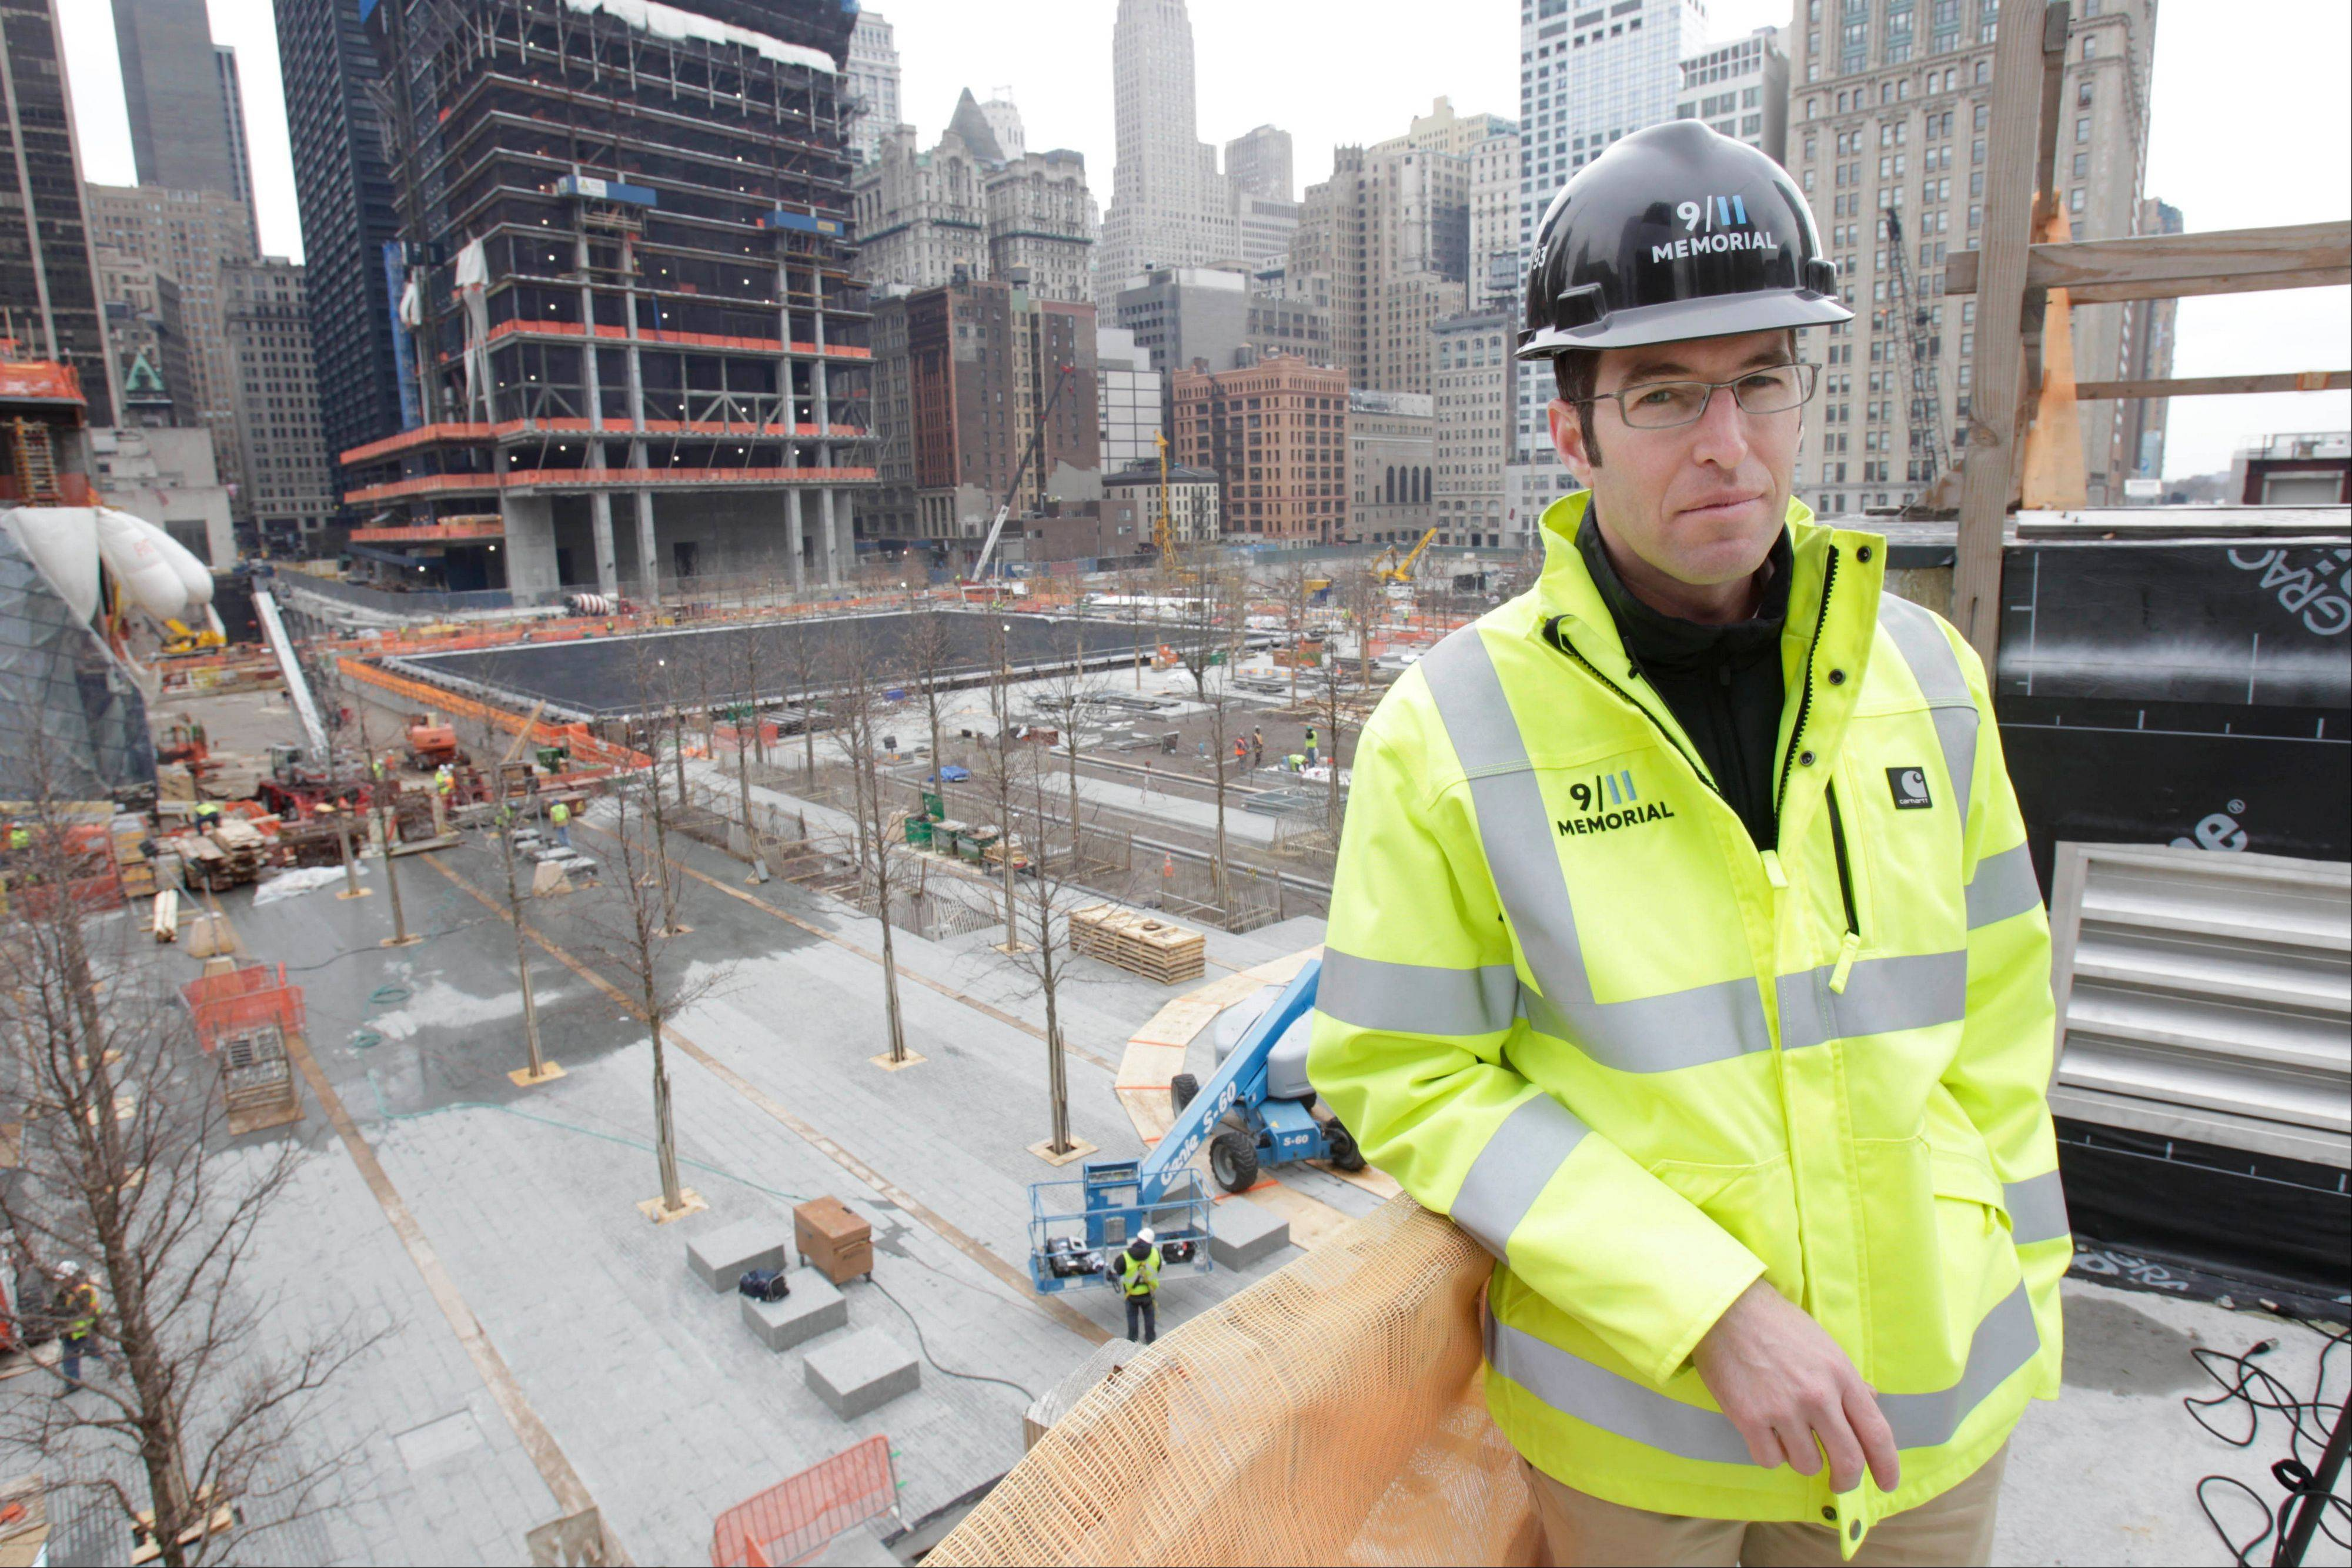 Michael Arad, an architect of the 9/11 memorial at ground zero, poses for a picture in front of the ongoing construction at ground zero in New York in April